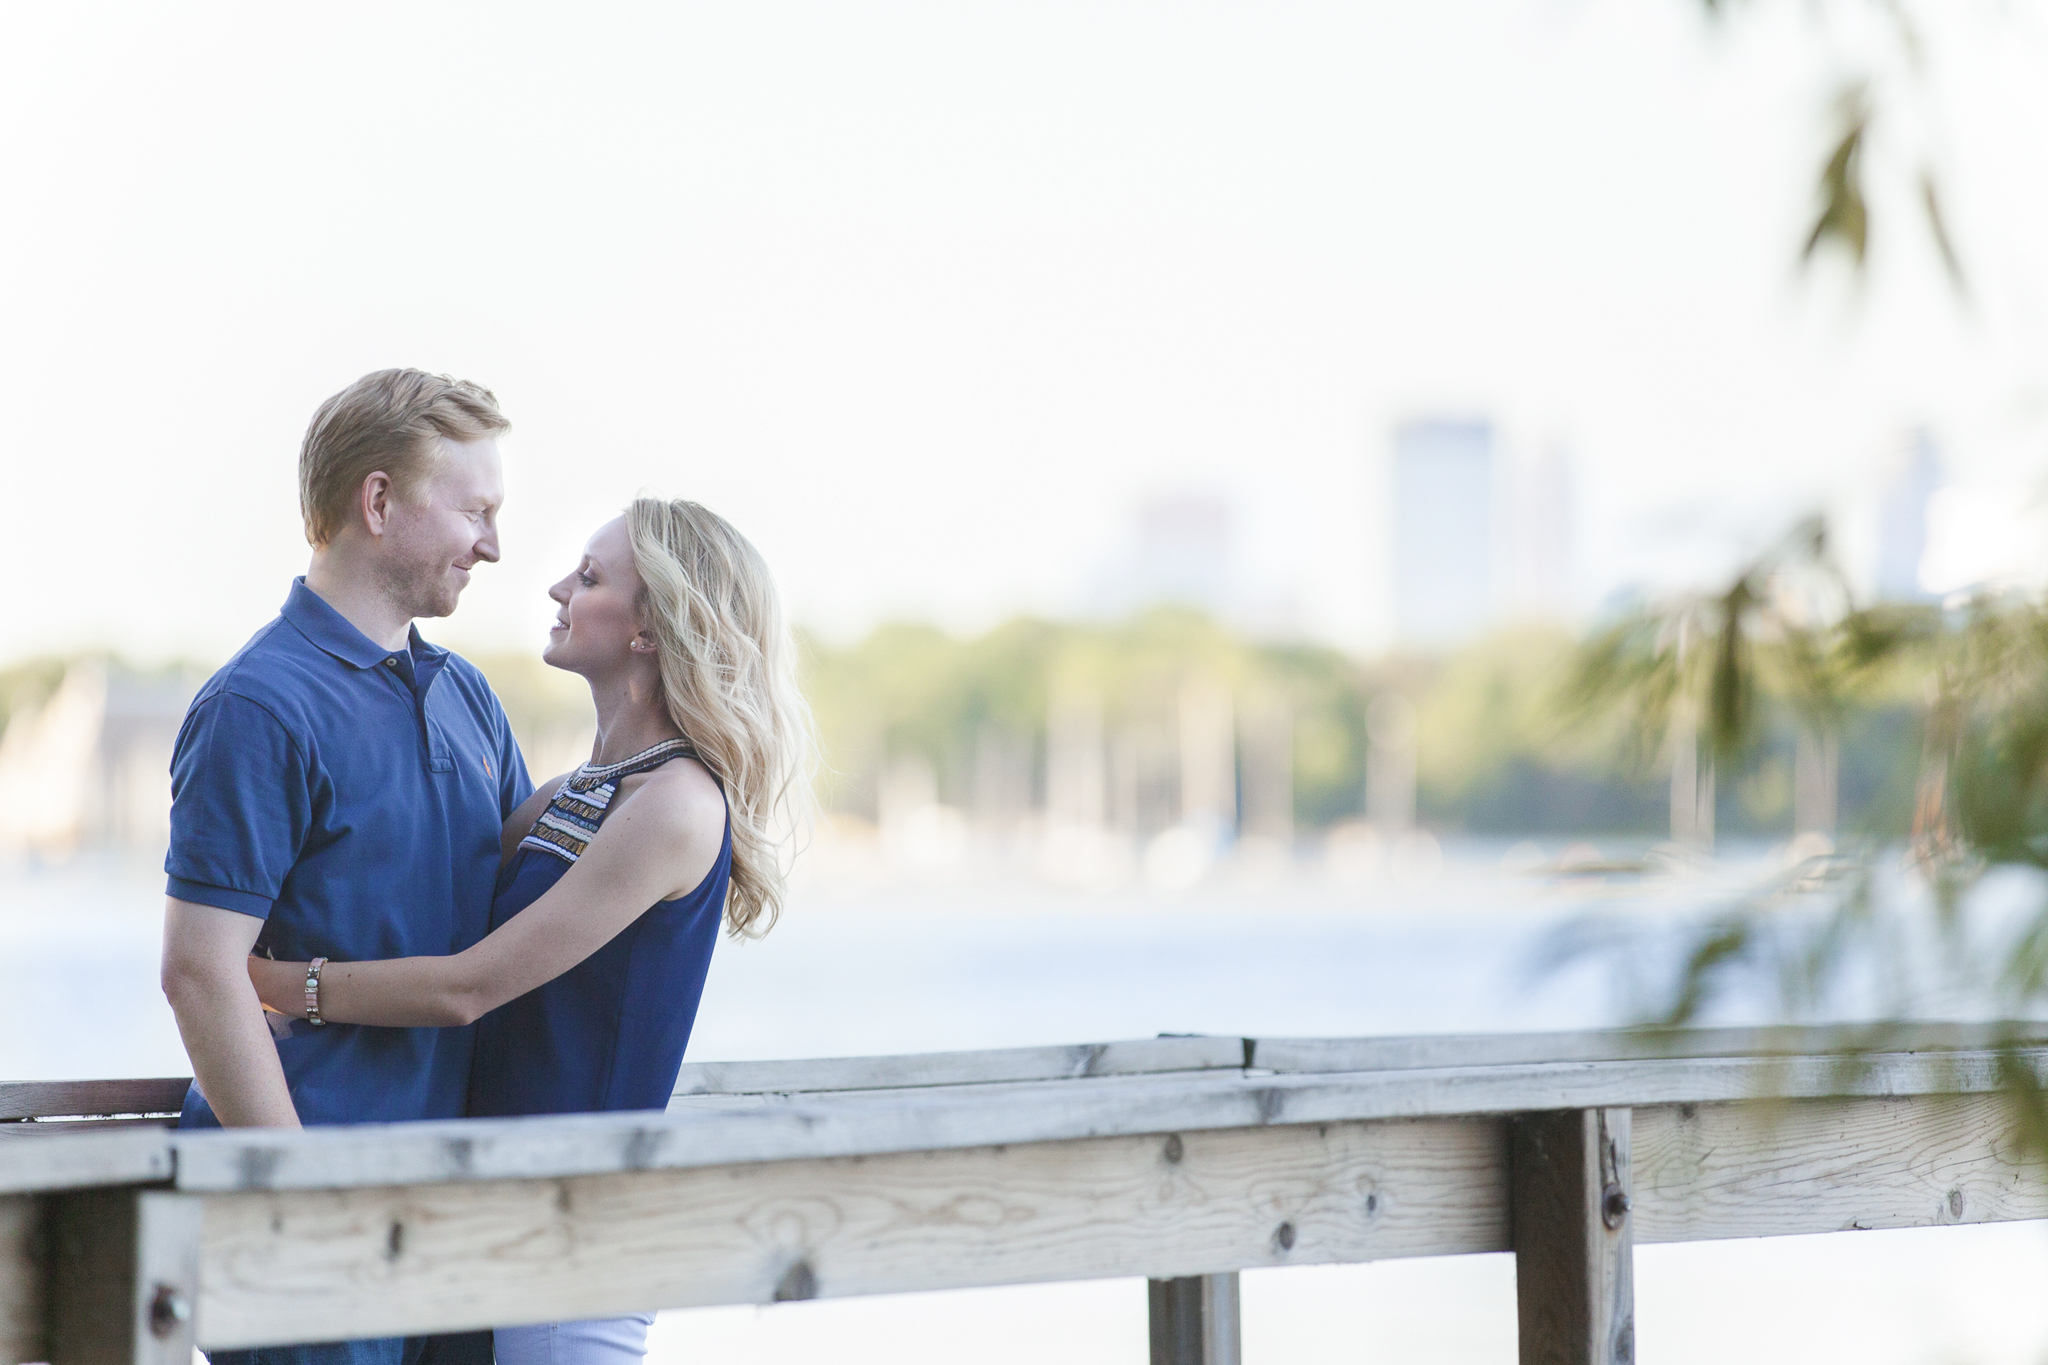 lake harriet minneapolis canoe engagement session-7.jpg